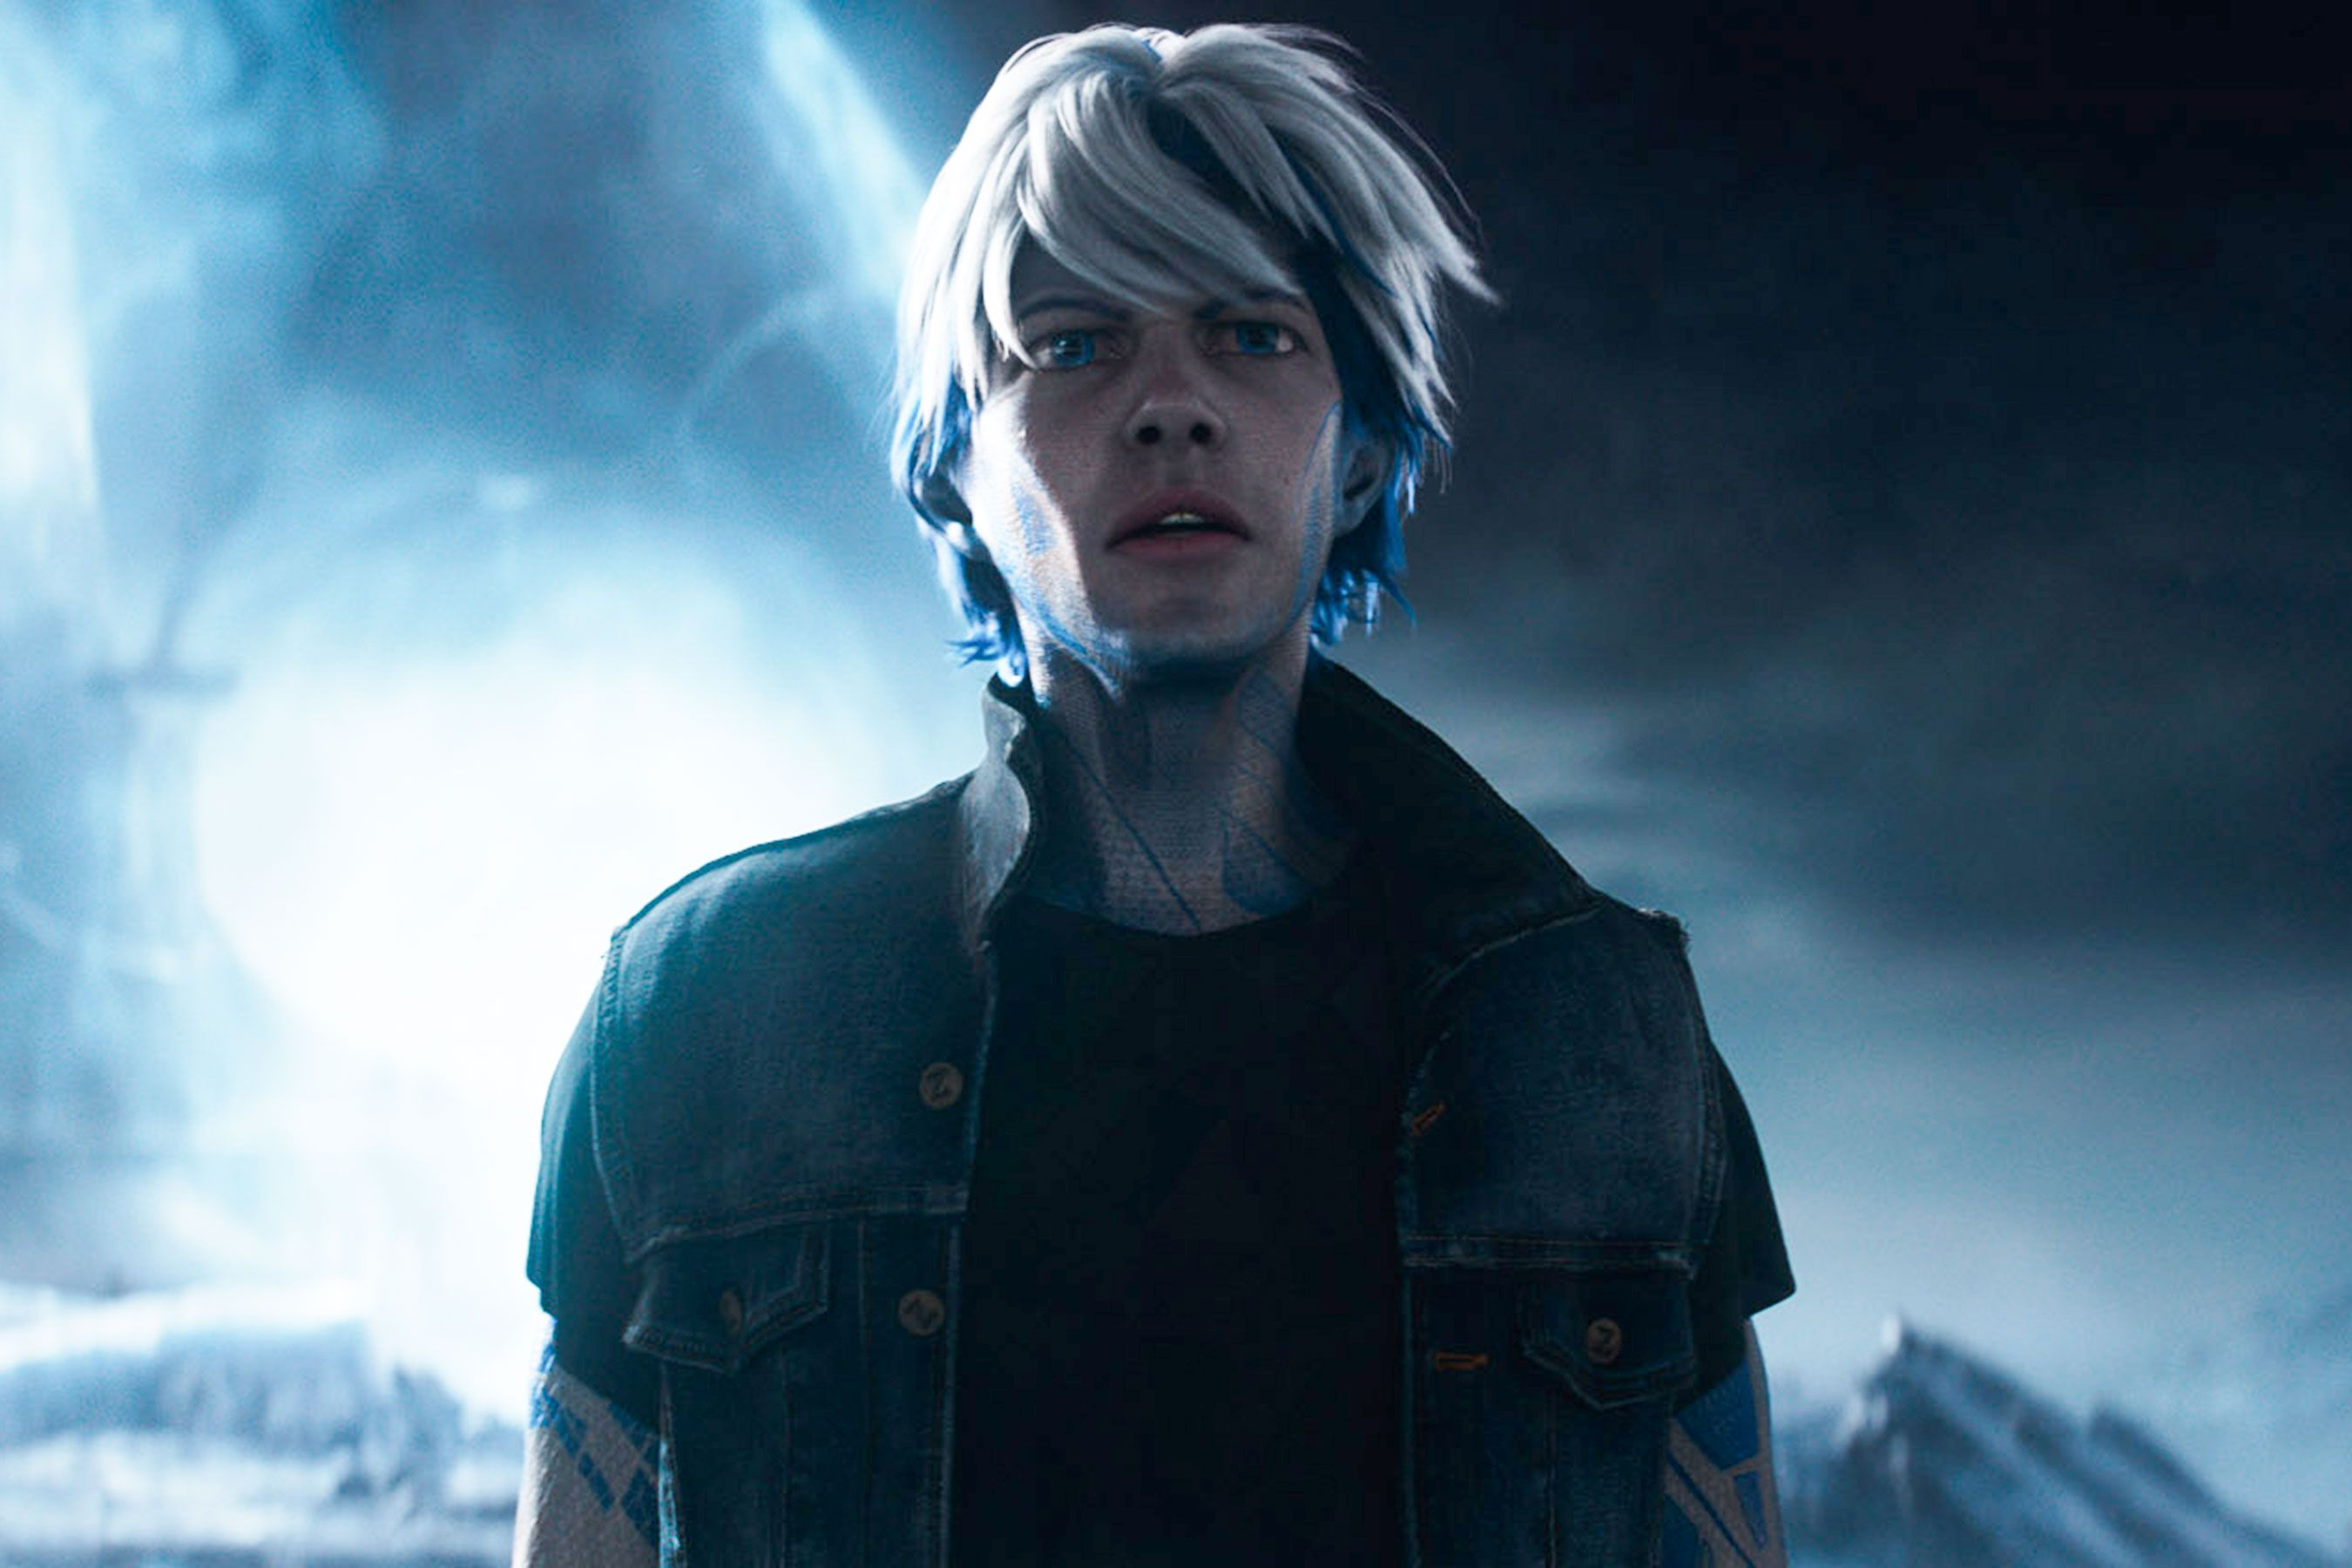 Here S What Our Critic Thought Of Steven Spielberg S Ready Player One Ready Player One Player One Ready Player One Movie